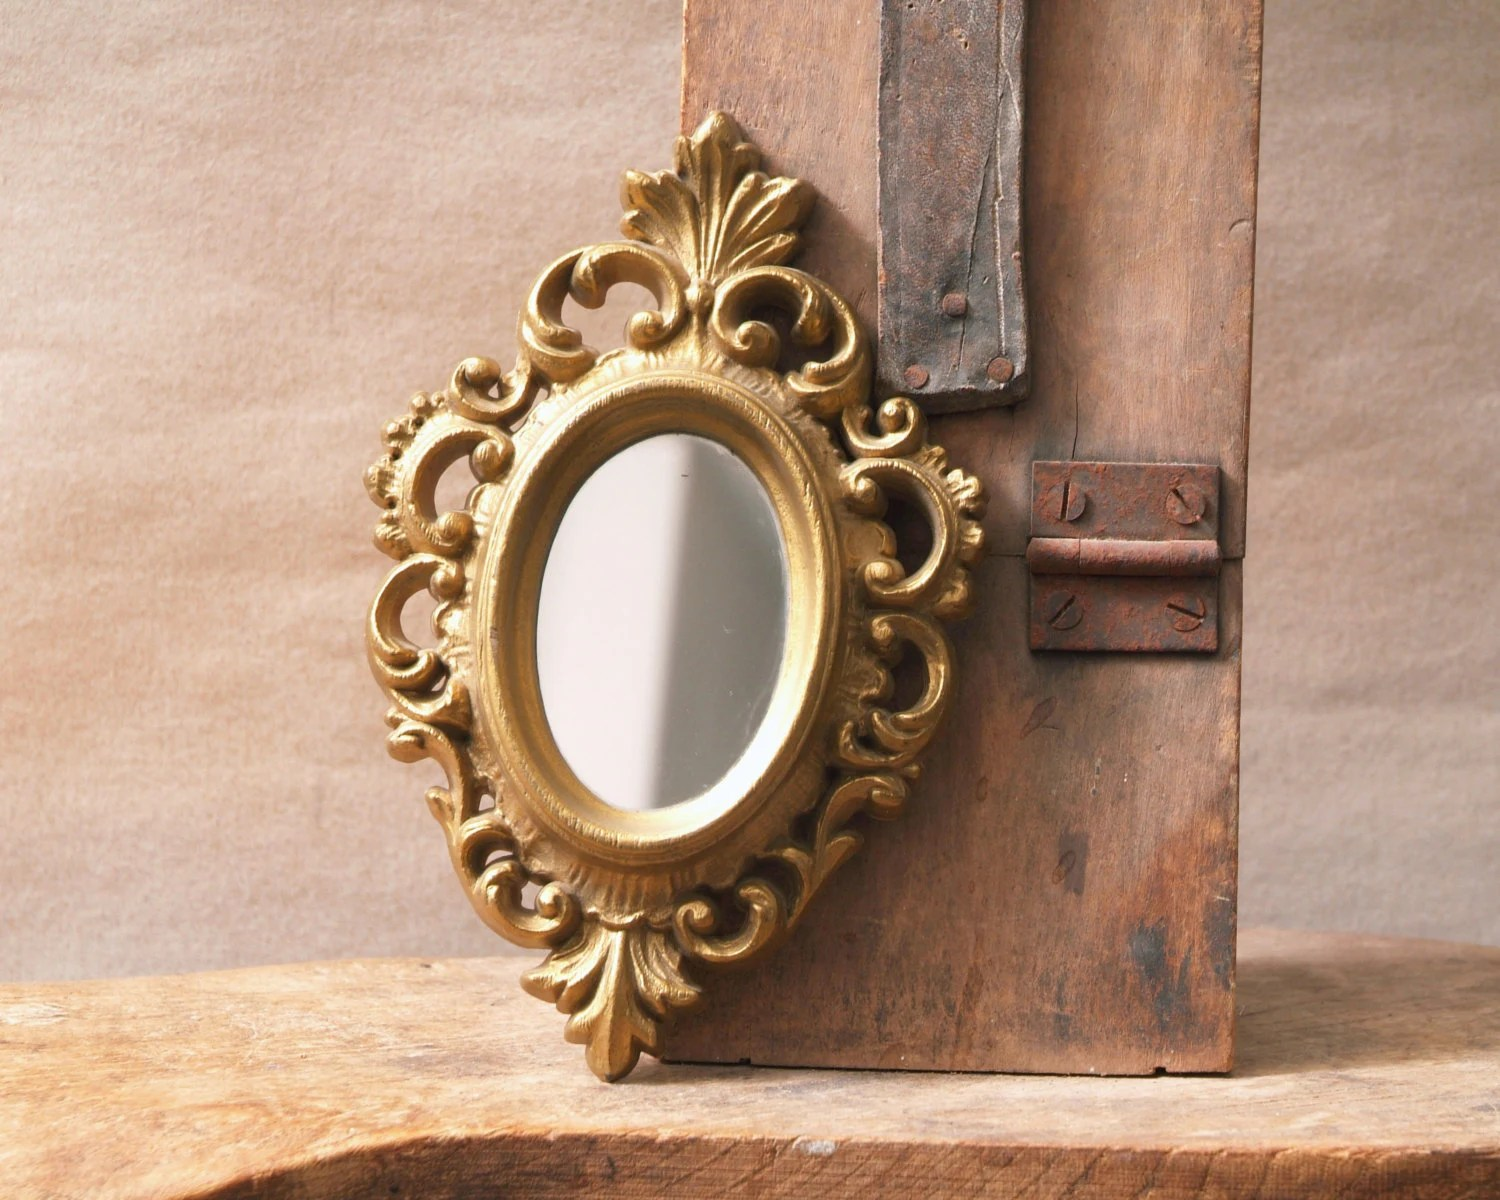 Vintage Gold Framed Mirror Small Oval Mirror Ornate Gold